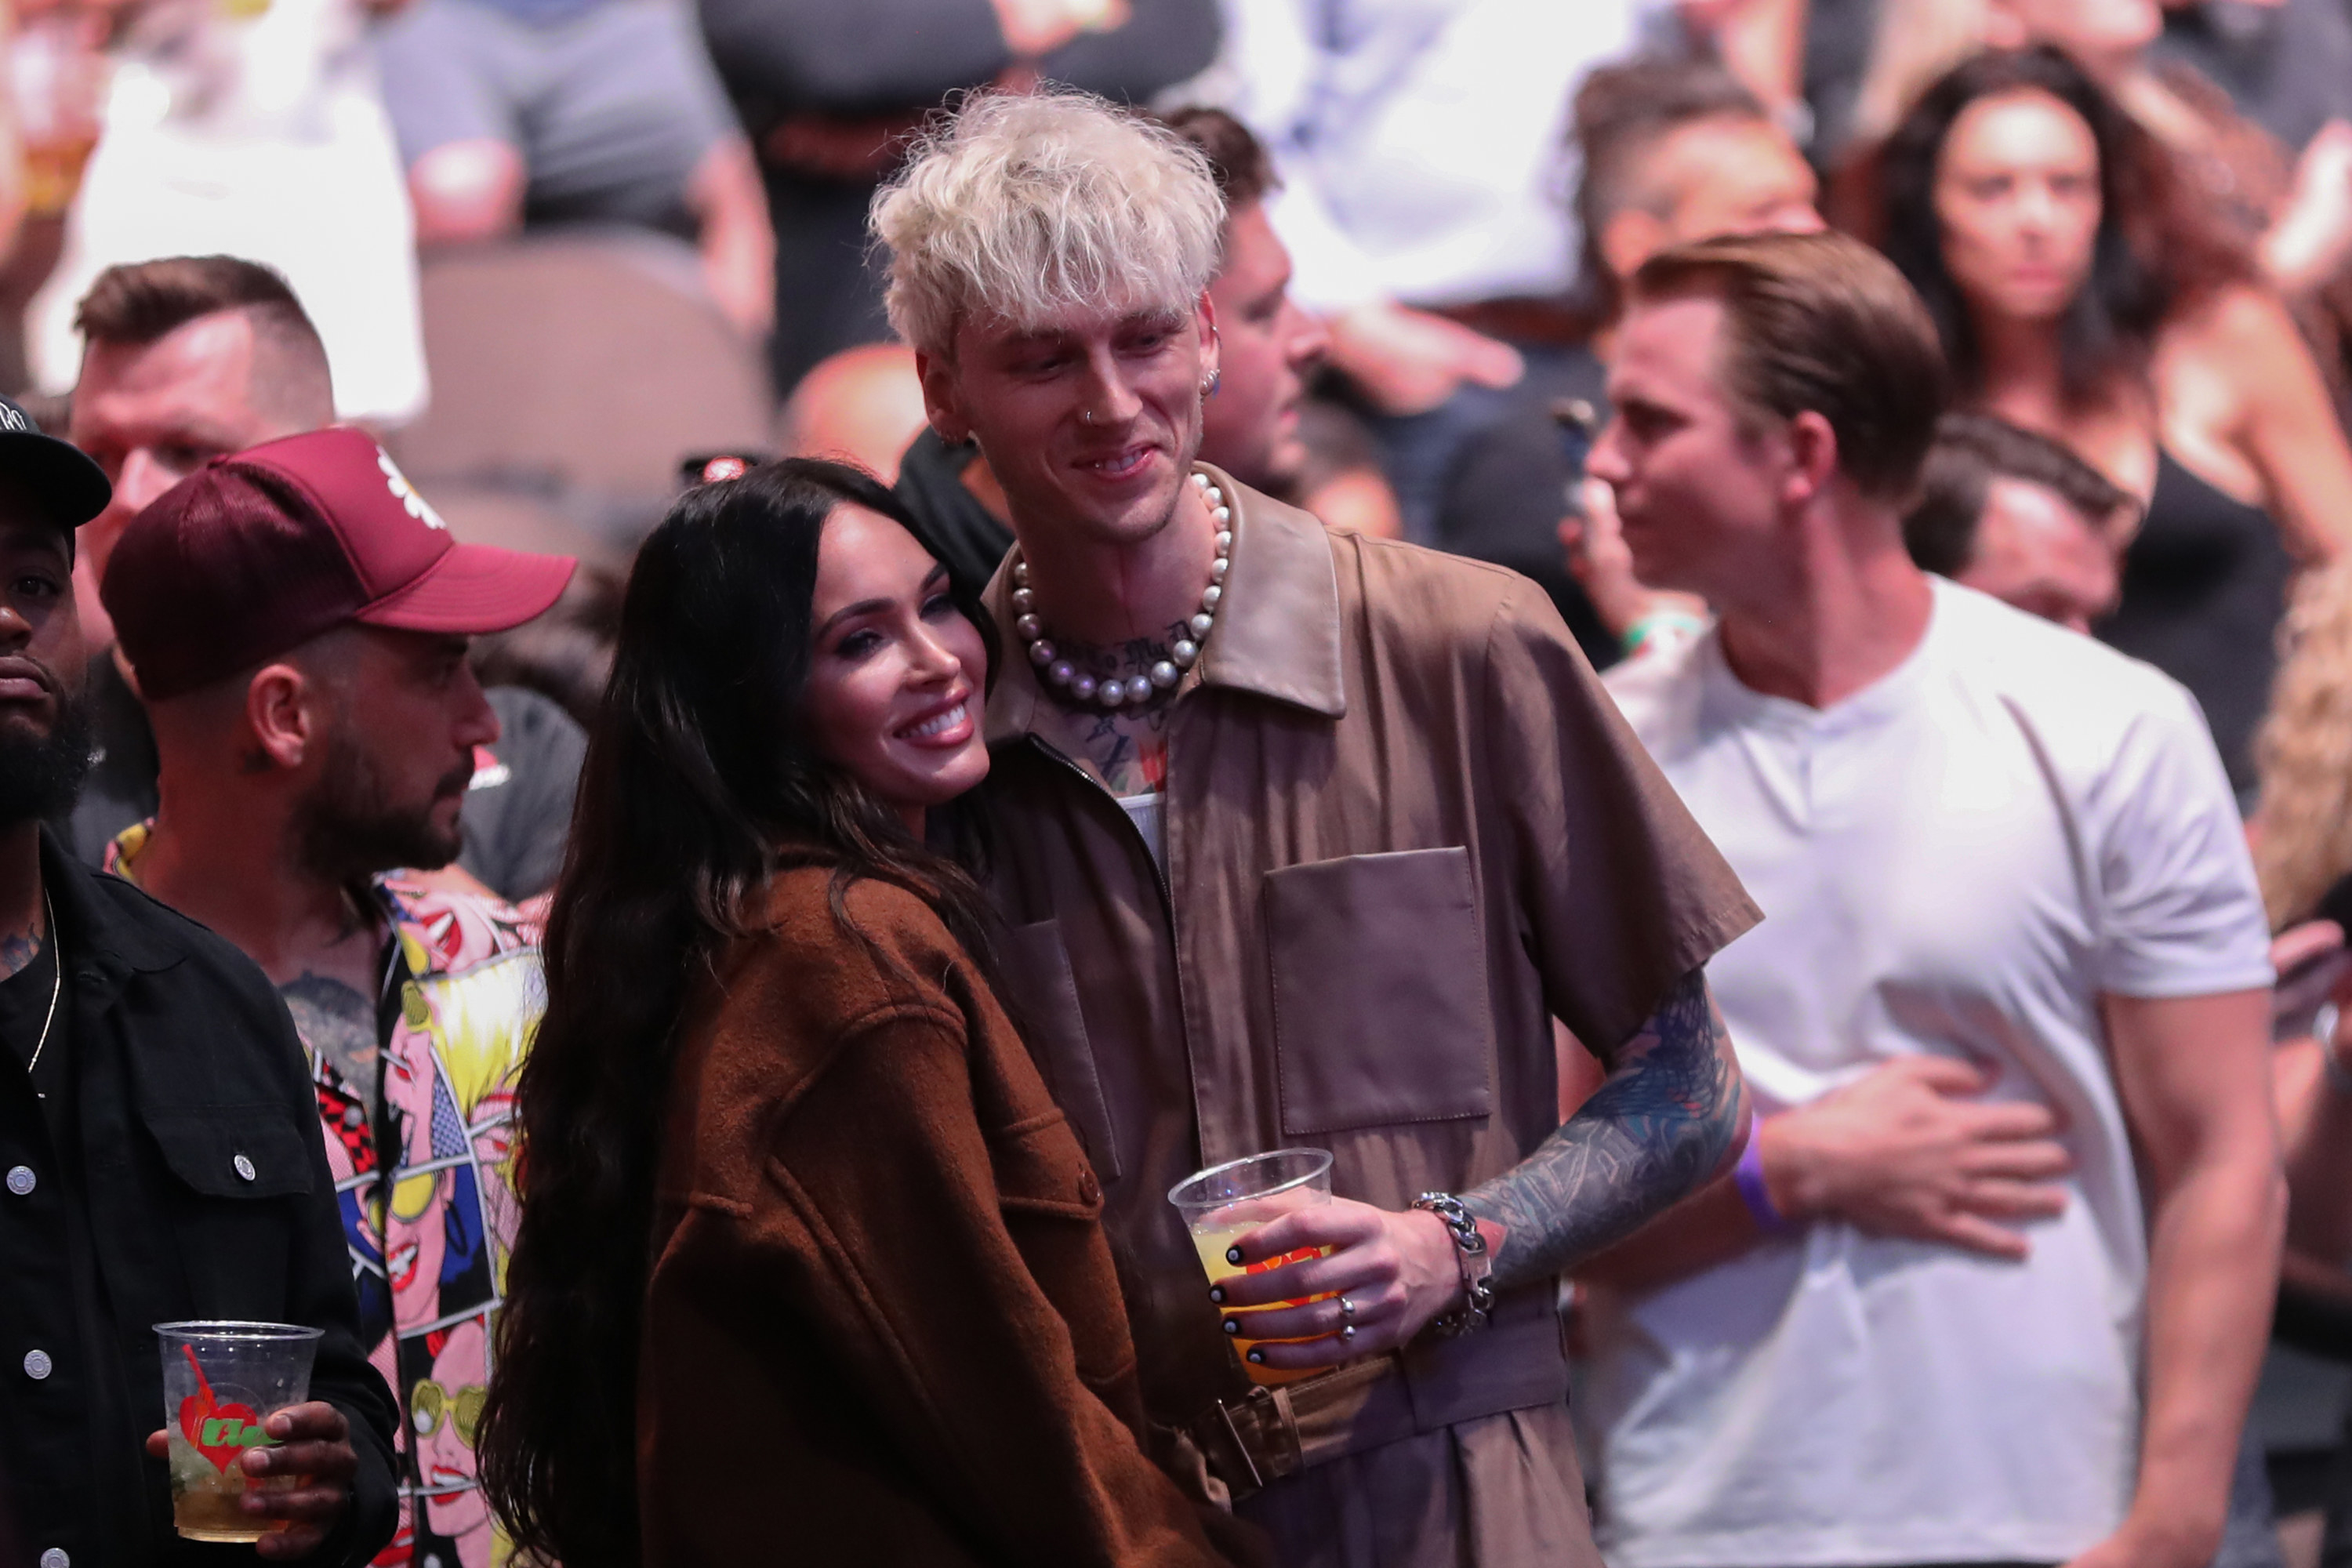 Megan Fox and Machine Gun Kelly are photographed together